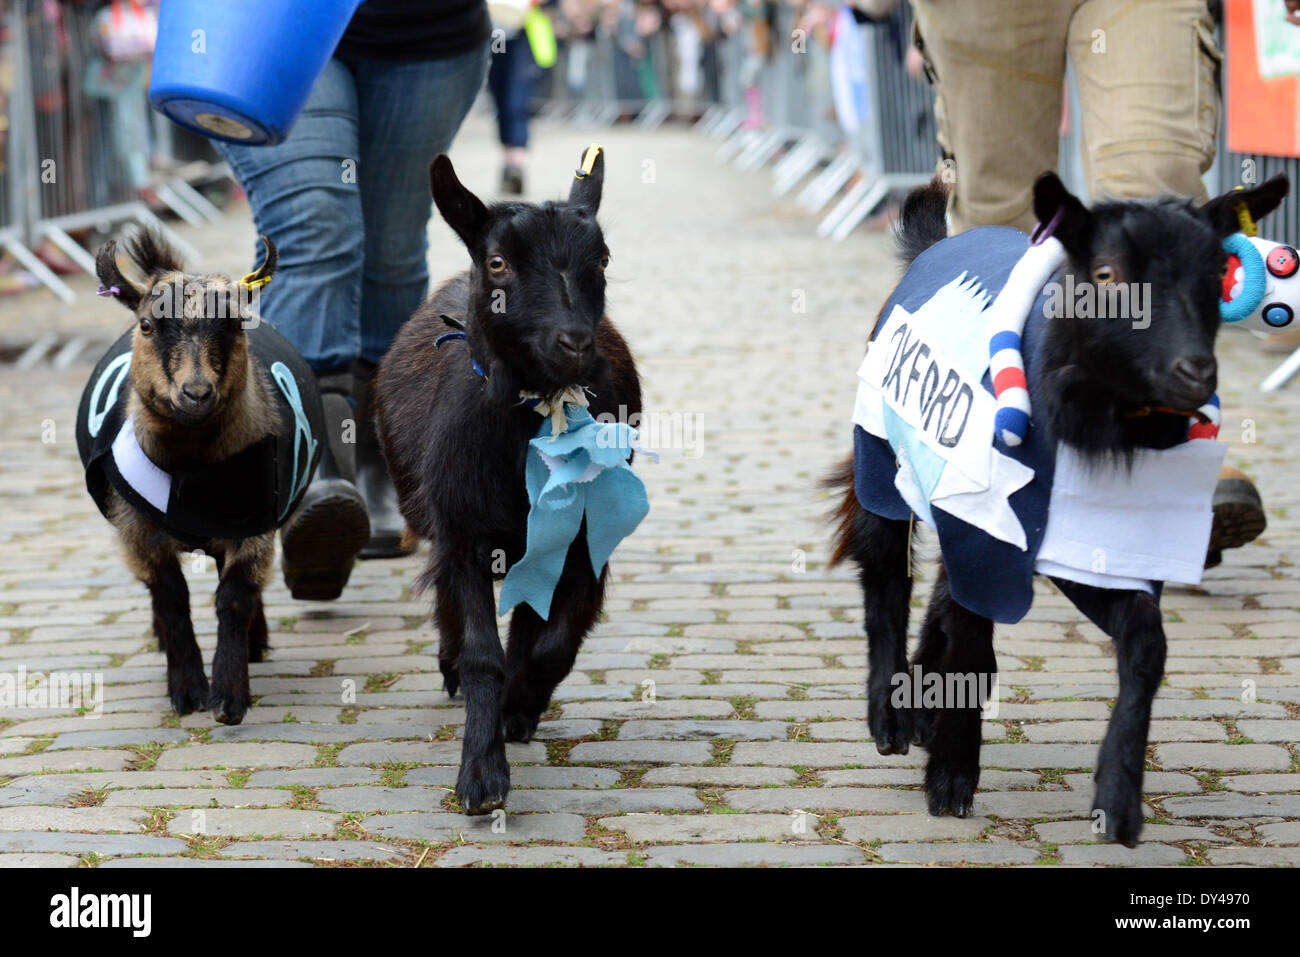 London, UK. 06th Apr, 2014. The Oxford and Cambridge 'Goat Race' at Spitalfields City Farm in London. Neither Oxford nor Cambridge won the race, with Herman (the goat with the black bib with a white & ampersand on it) taking top honours. Credit:  See Li/Alamy Live News - Stock Image